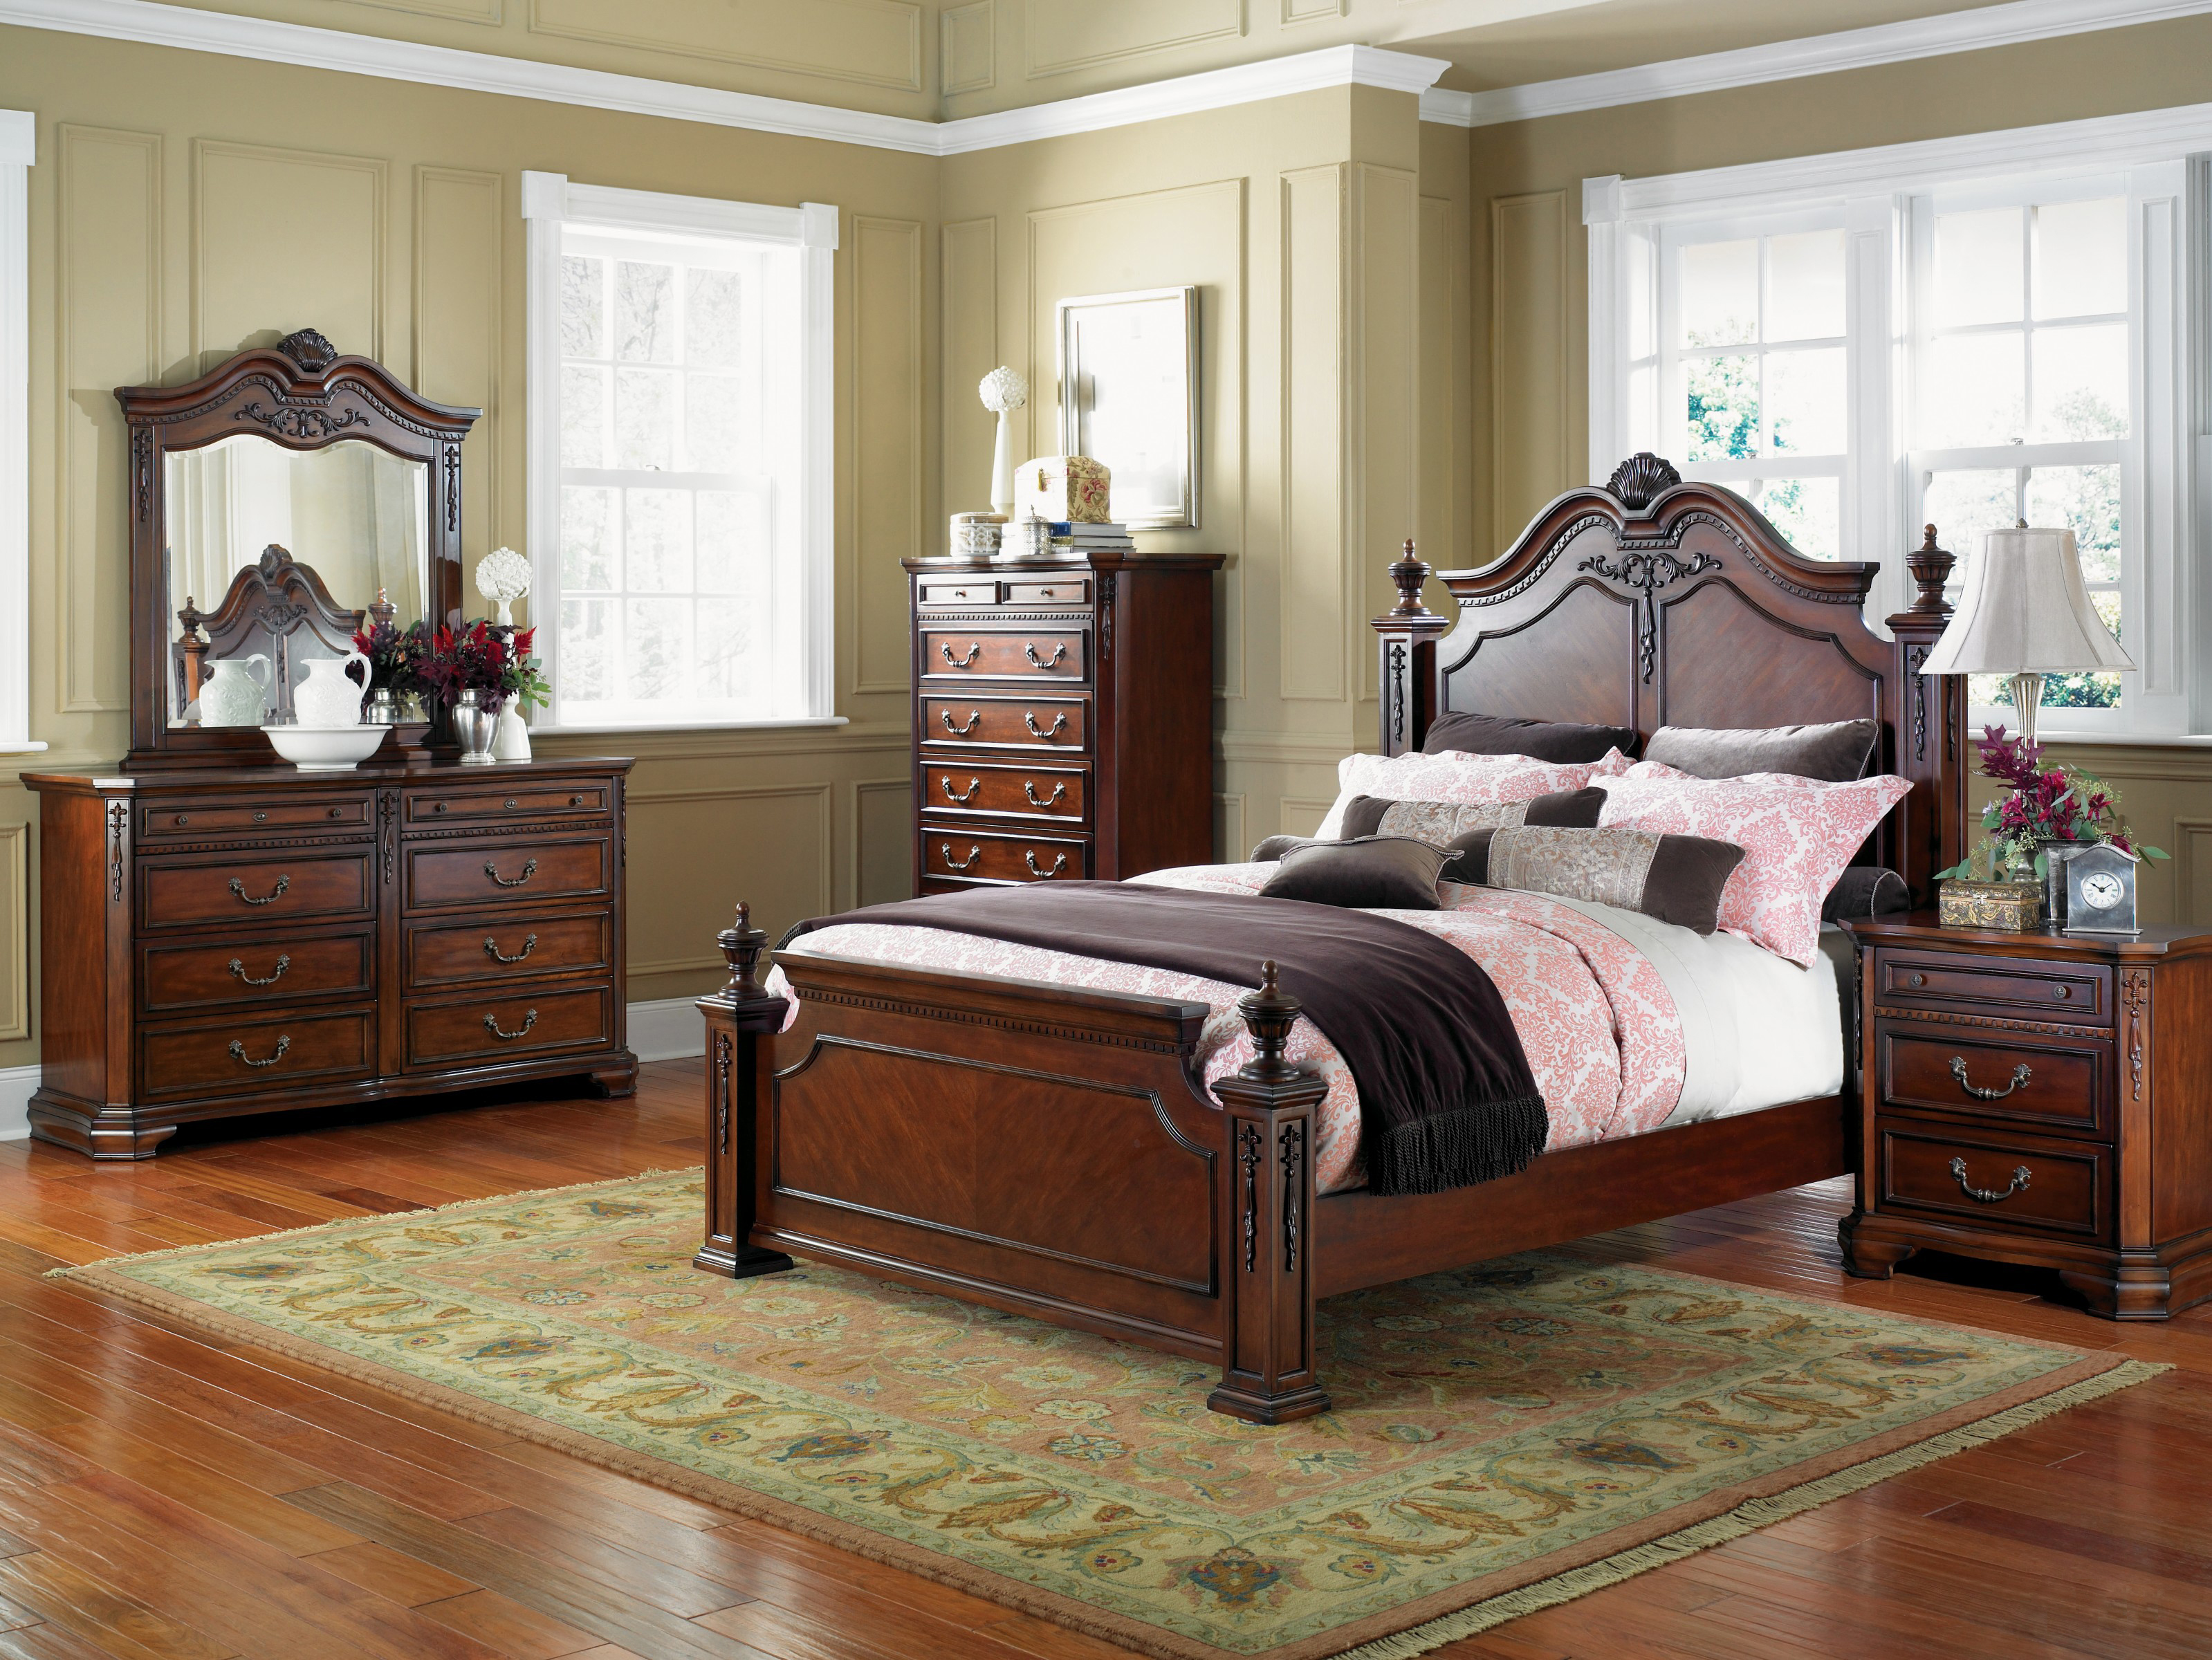 Bedroom furniture business plan